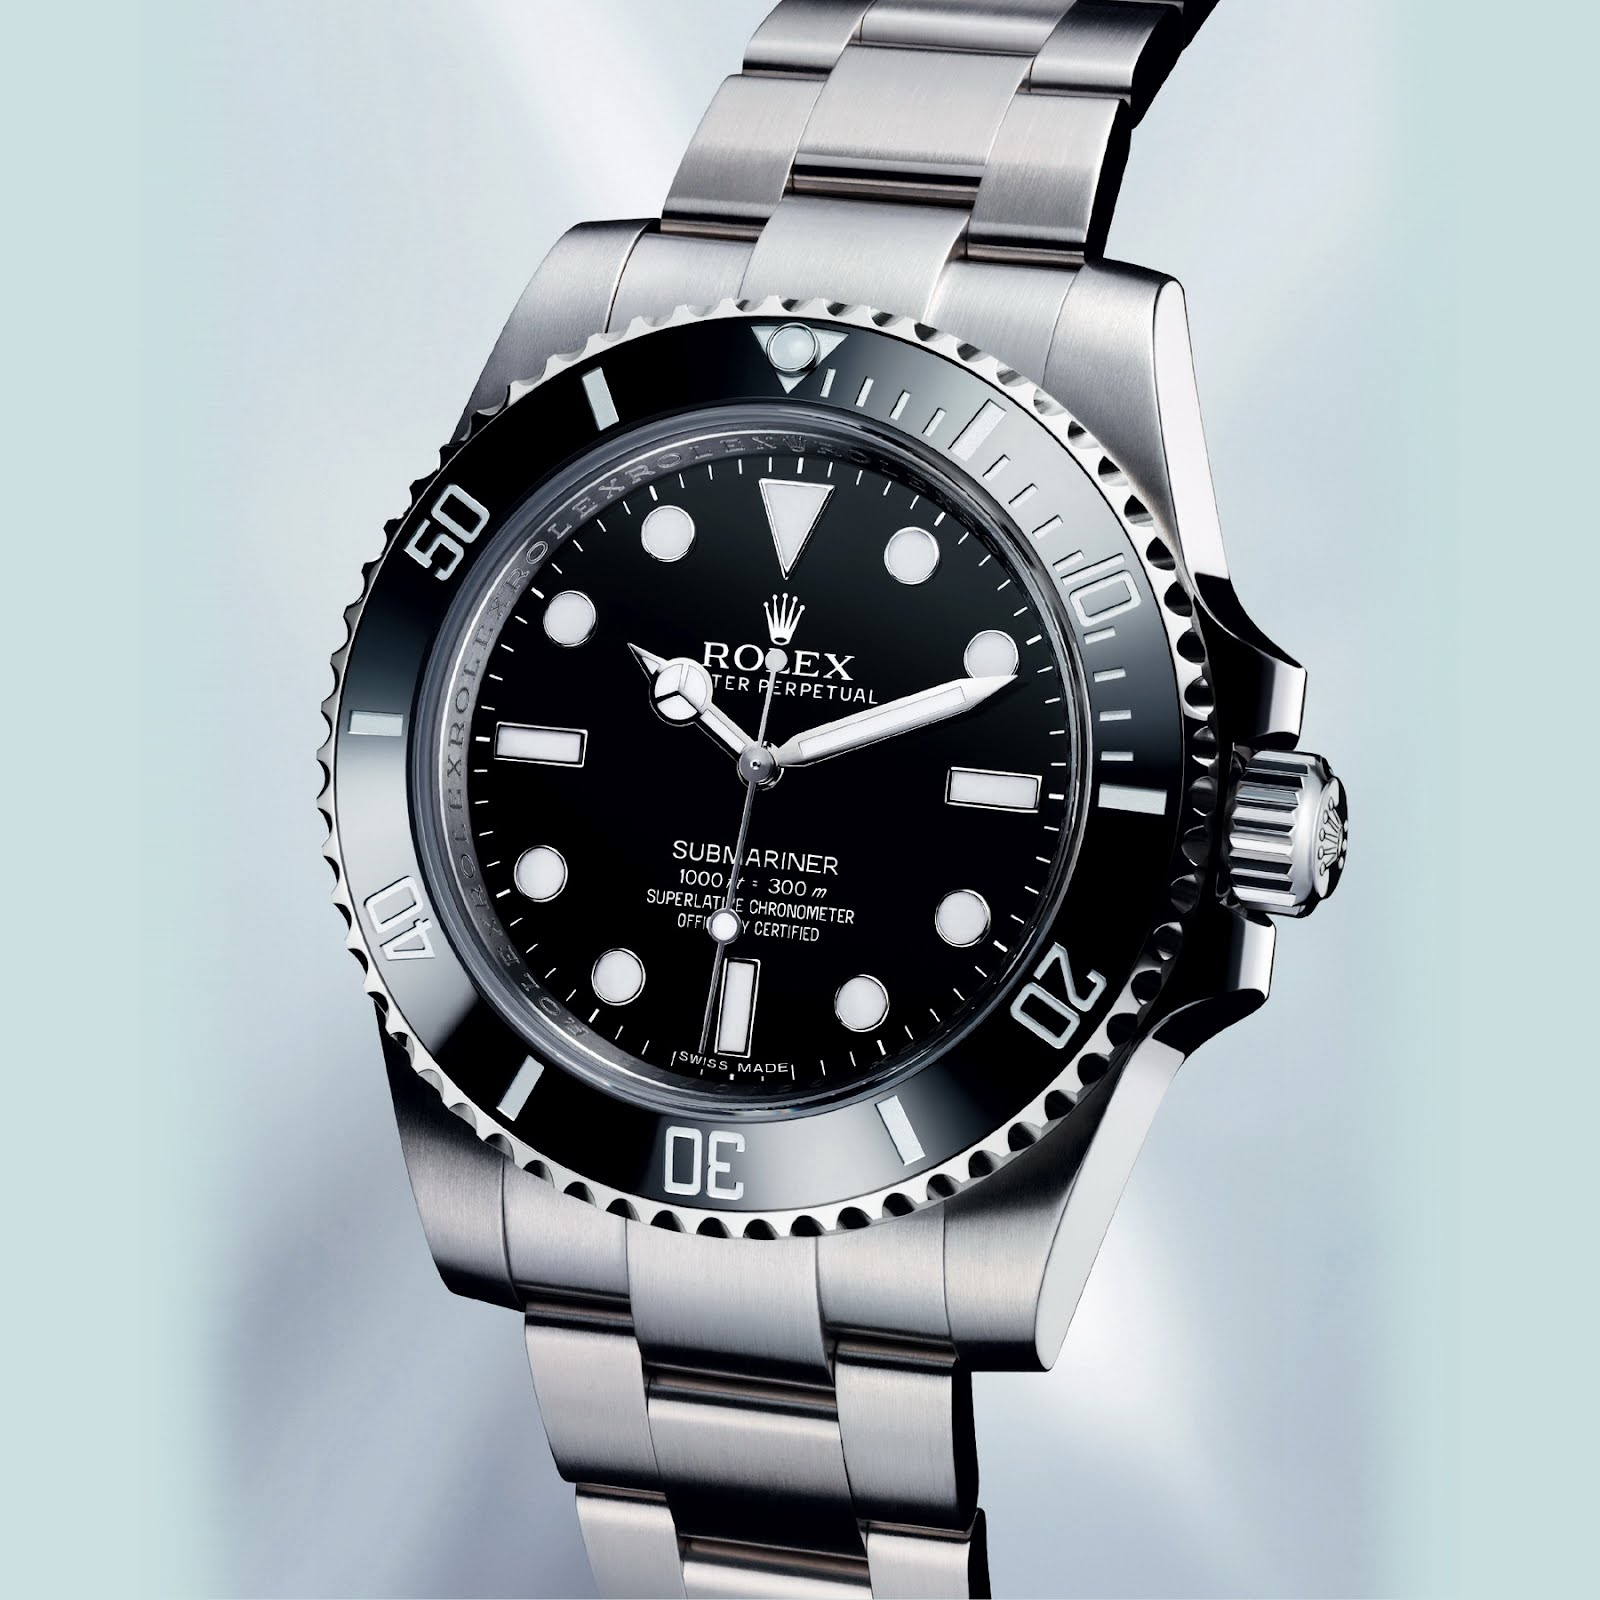 Omega planet ocean vs rolex submariner page 9 for Submarine watches